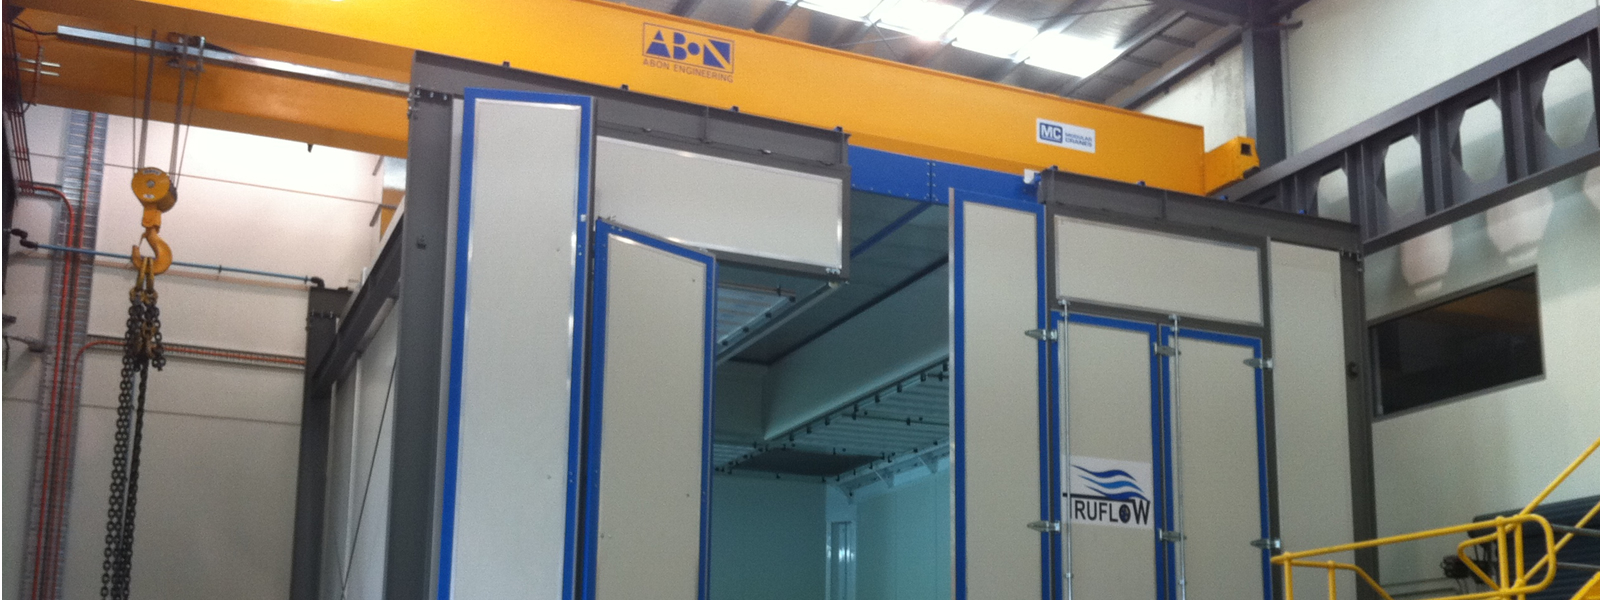 FLSSmidth Abon engineering Spraybooth